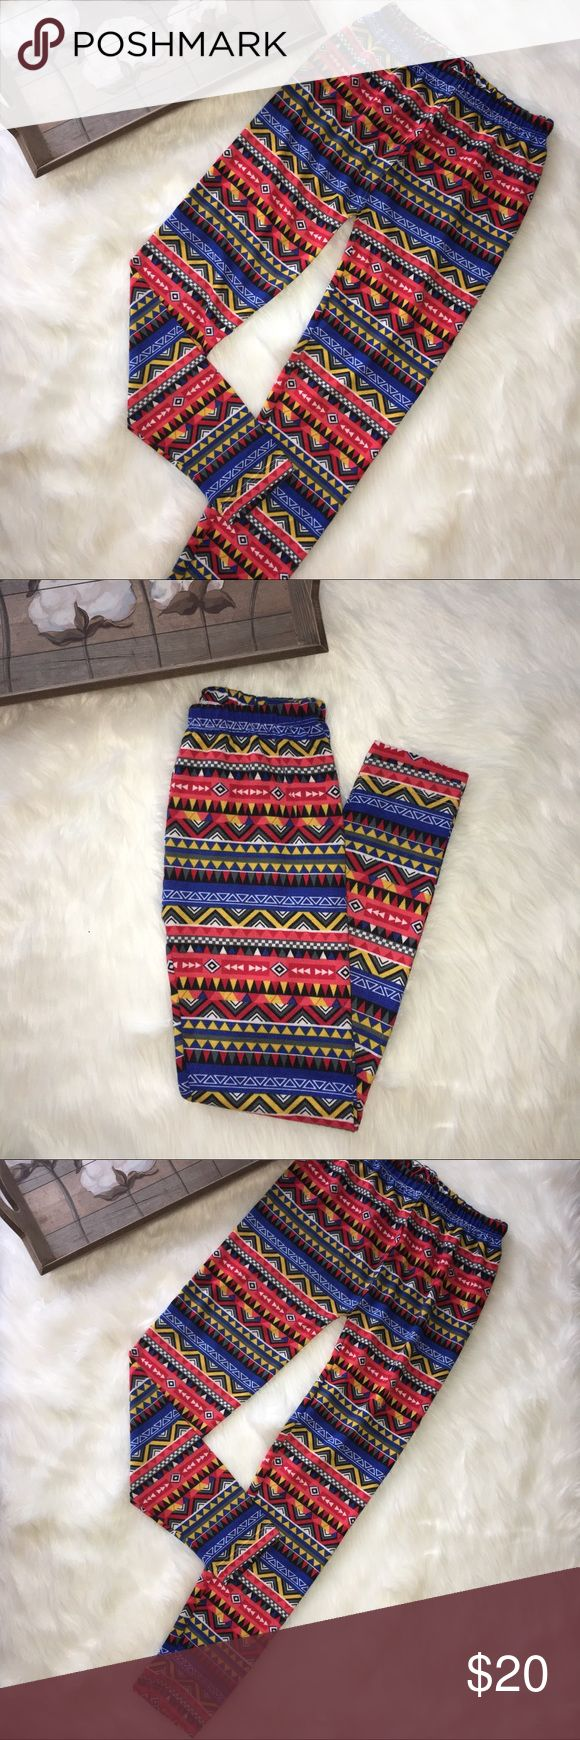 Tribal Aztec Geometric Print Leggings Super chic and stylish tribal Aztec Geometric print leggings in excellent condition. One size. Fit like a small/medium. Brand new with tags from my boutique line. Cotton Jangle Boutique Pants Leggings